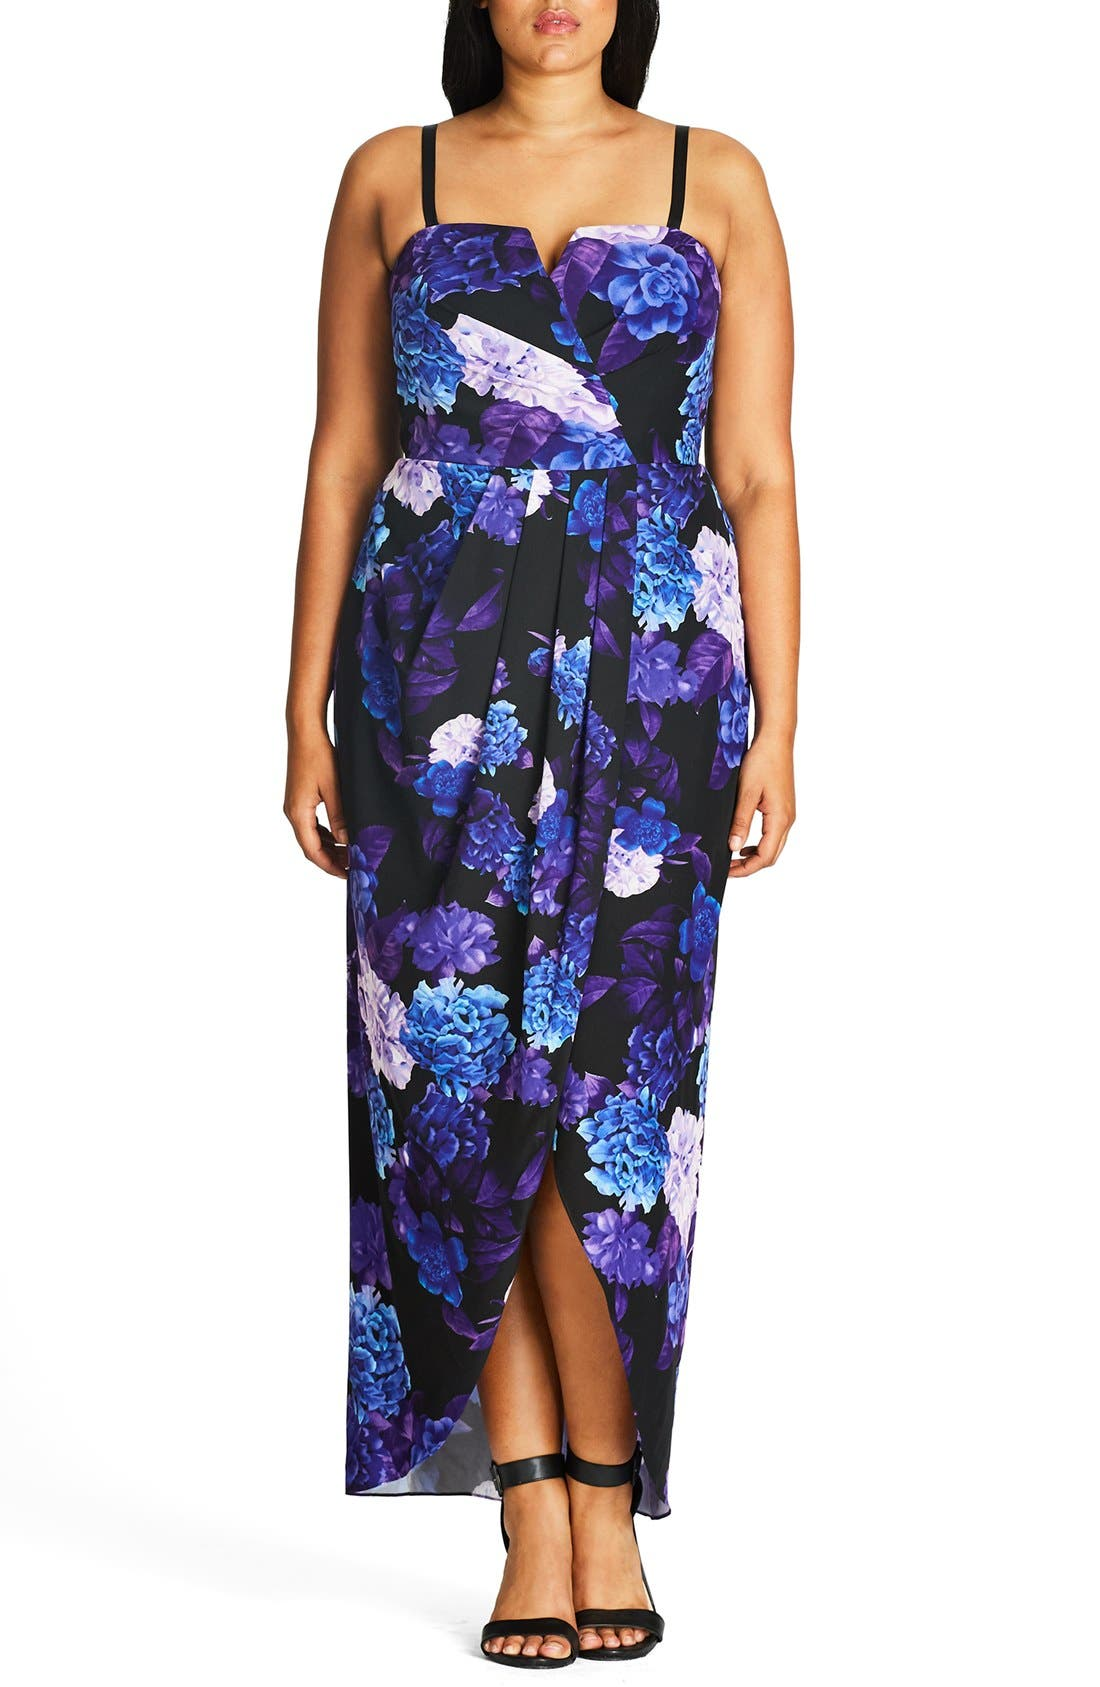 Alternate Image 1 Selected - City Chic Hydrangea Print Maxi Dress (Plus Size)